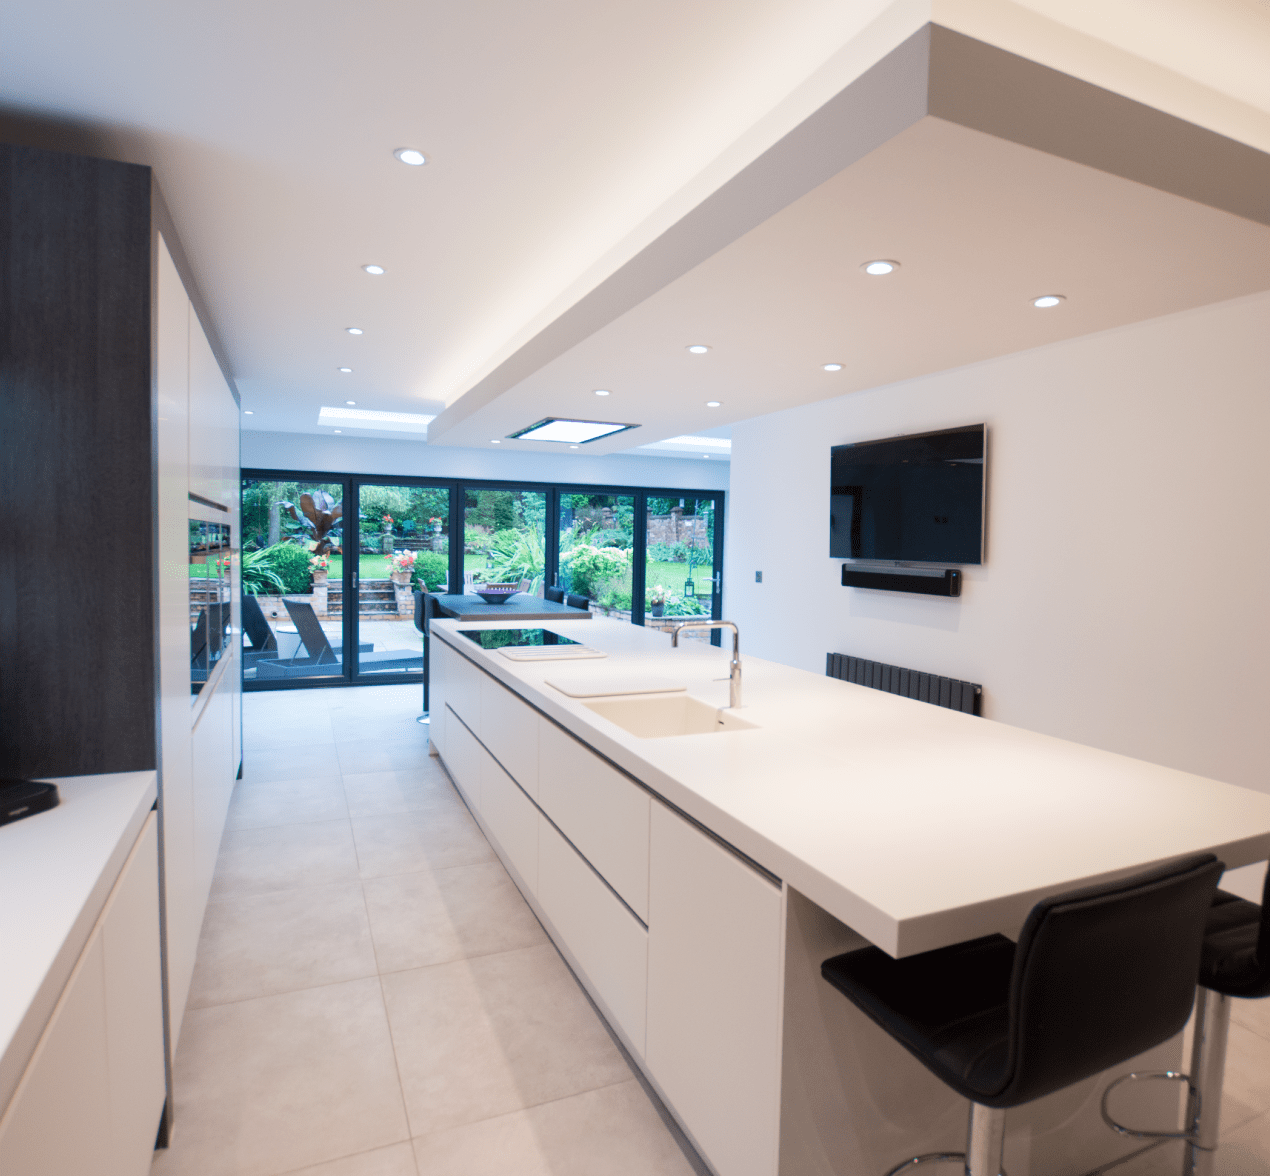 The Contemporary Family Kitchen For Customers In Stockport